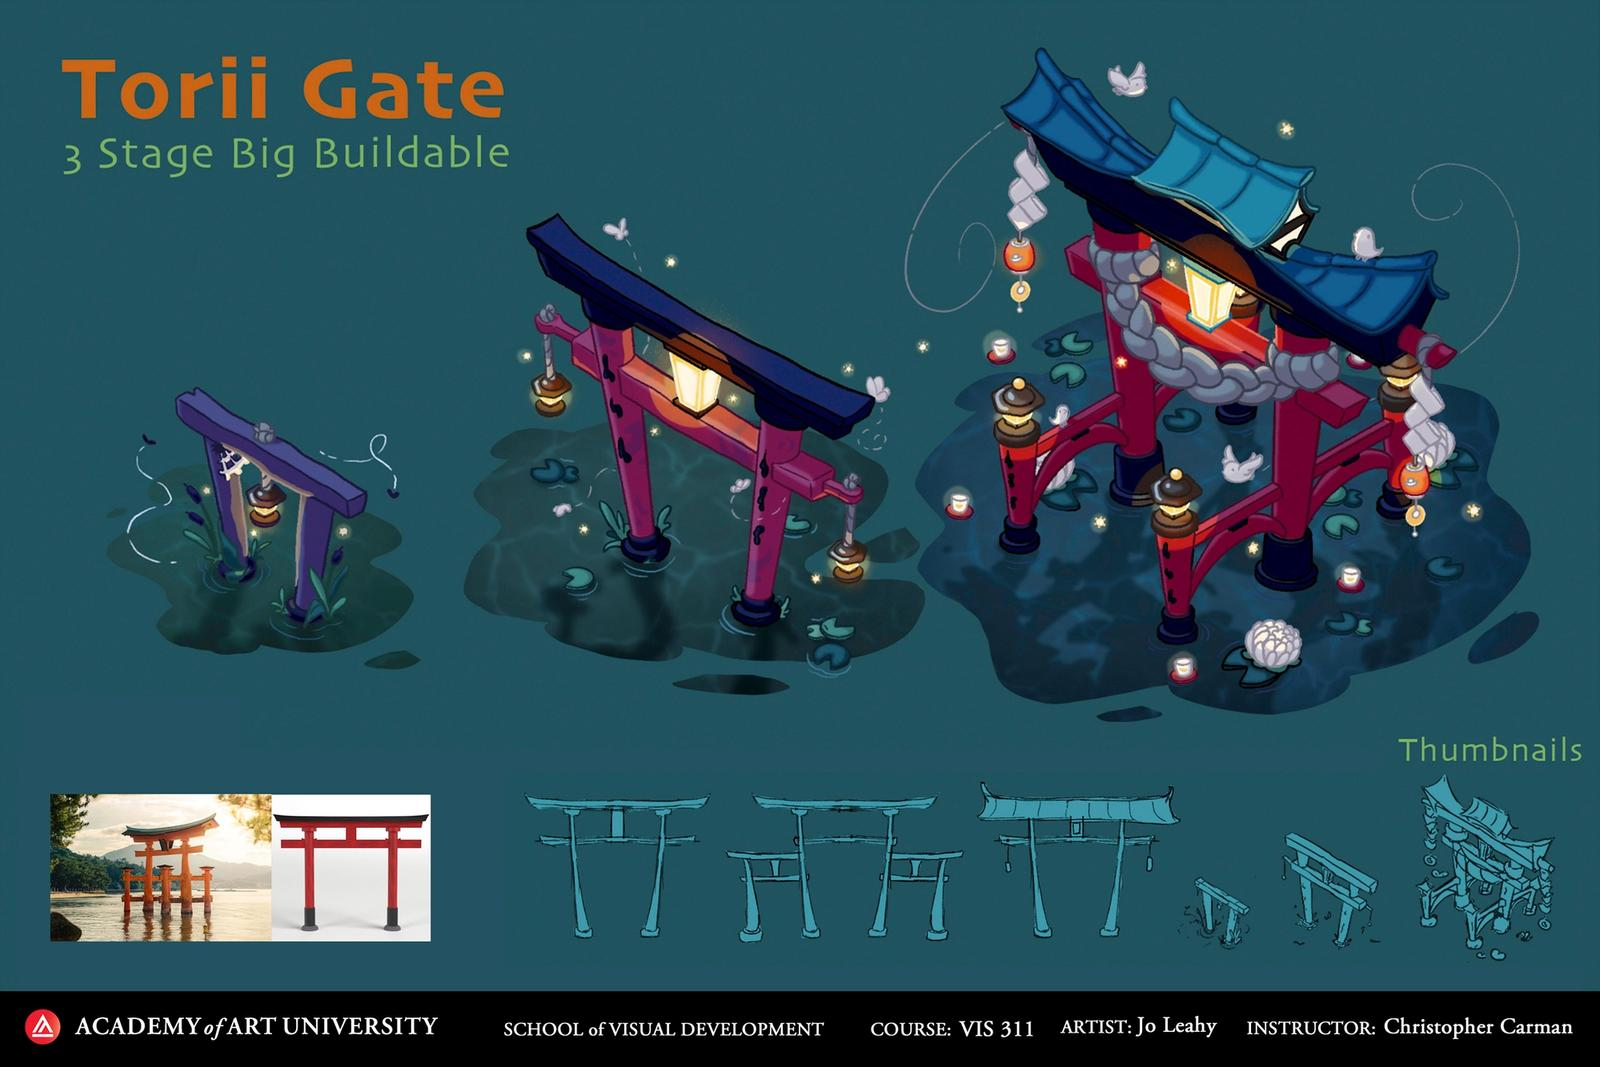 Torii Gate 3 Stage Big Buildable - Flow